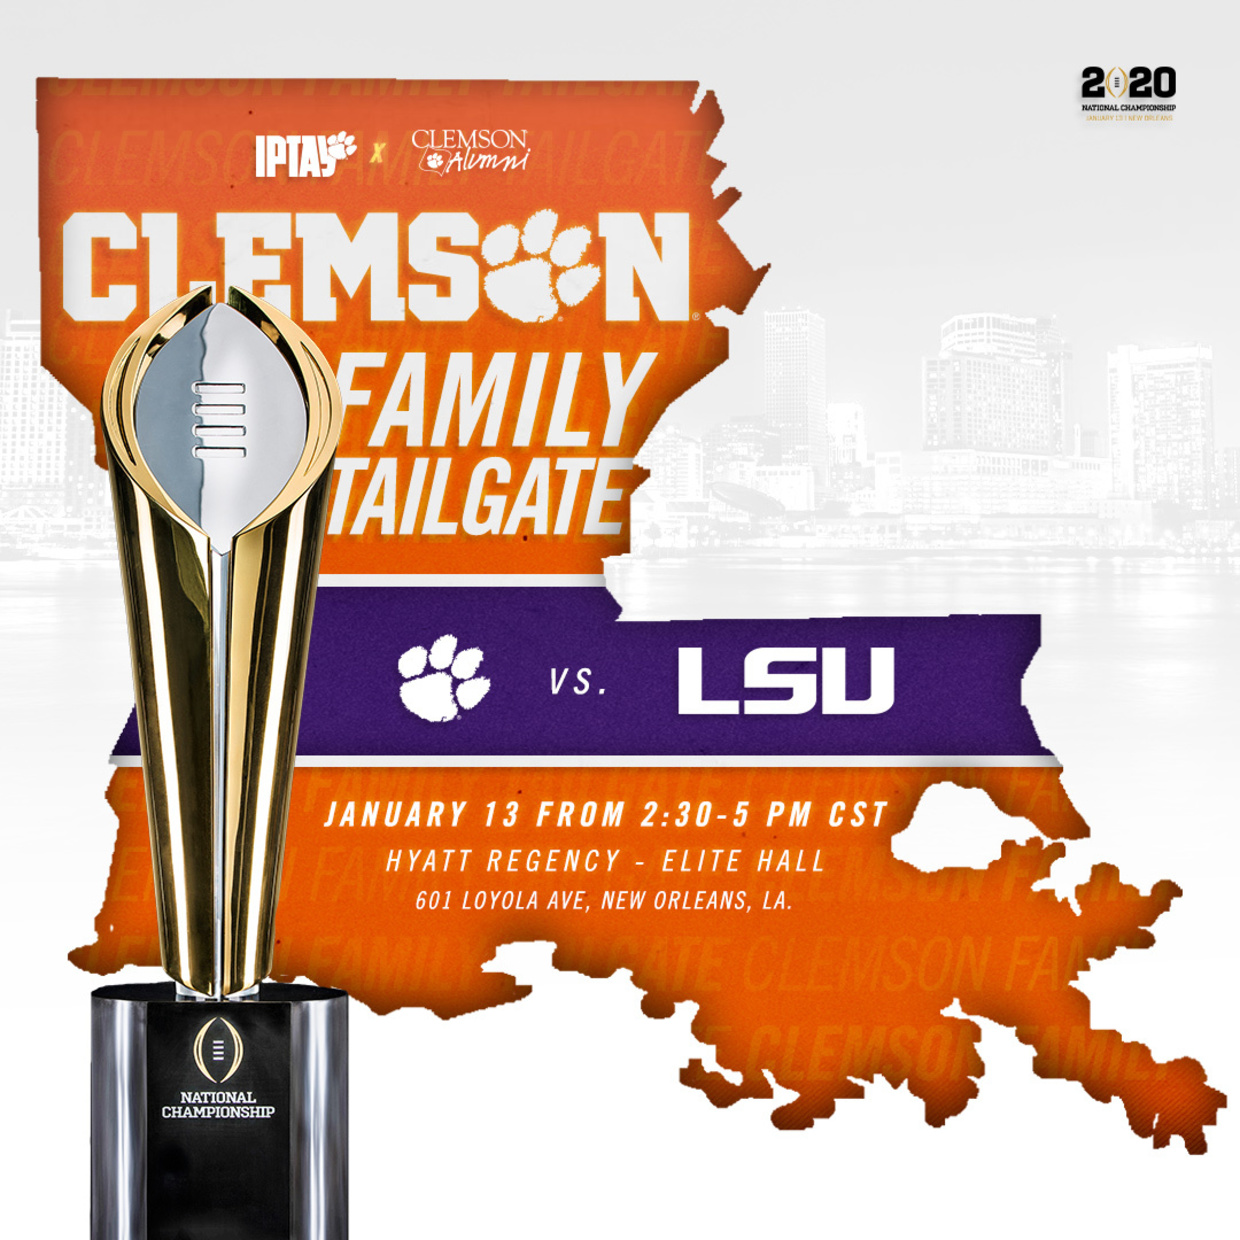 Clemson Family Tailgate - Clemson vs LSU. January 13, 2020 from 2:30pm-5:00pm CT. Hyatt Regency - Elite Hall. 601 Layola Ave, New Orleans, LA - presented by IPTAY and Clemson Alumni Association